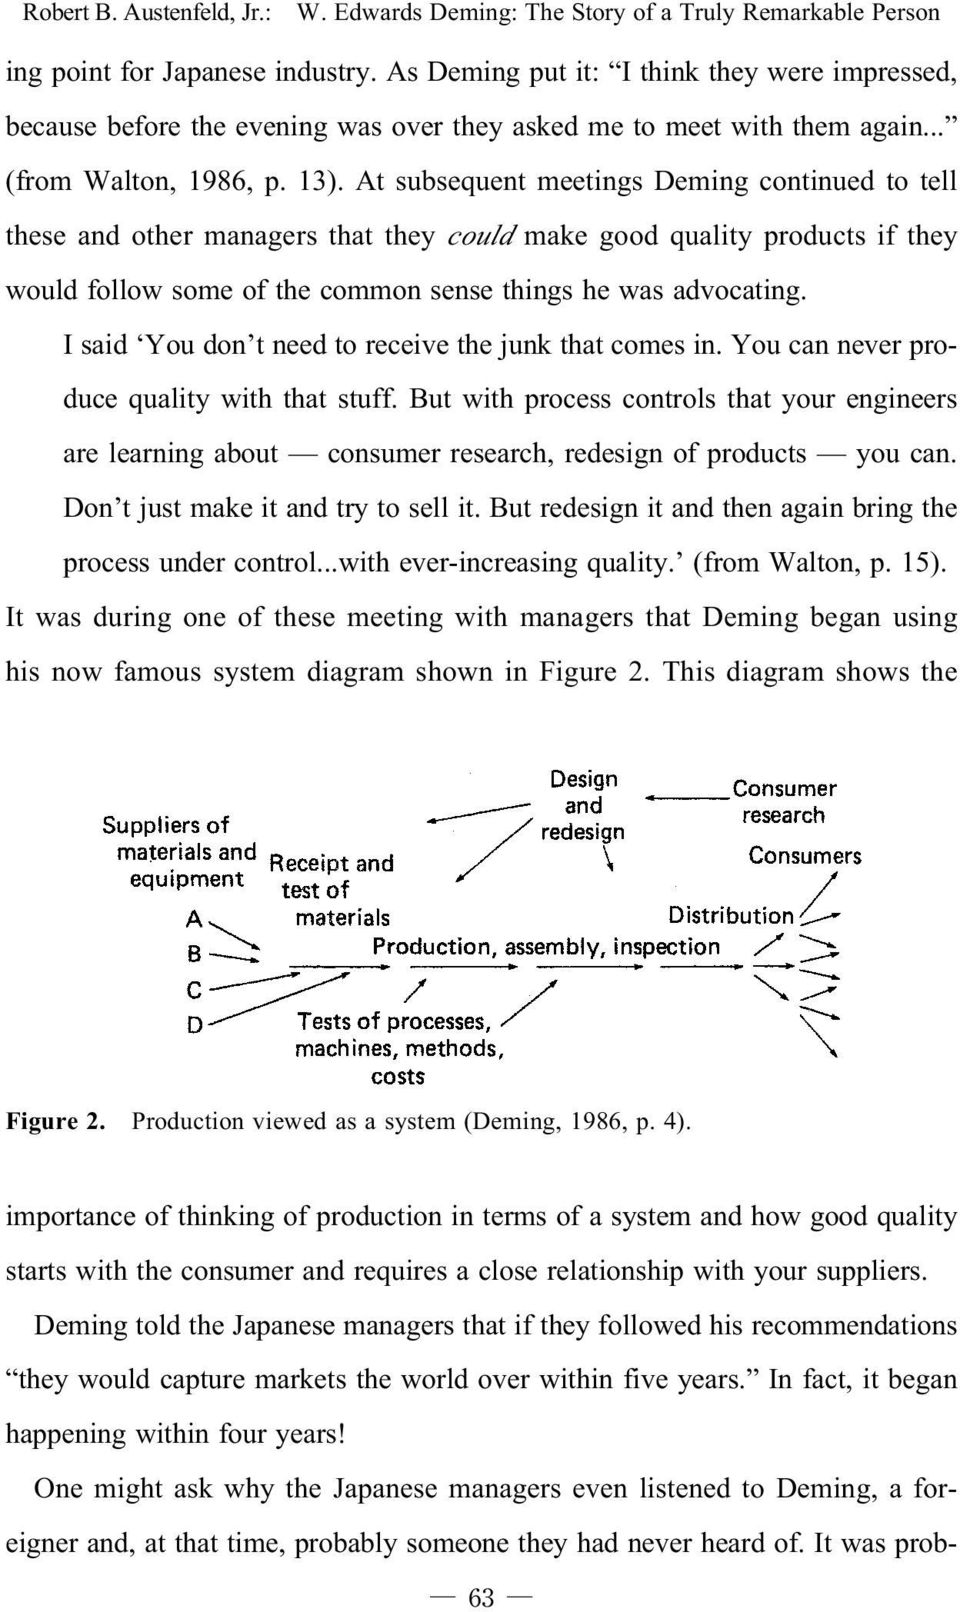 At subsequent meetings Deming continued to tell these and other managers that they could make good quality products if they would follow some of the common sense things he was advocating.